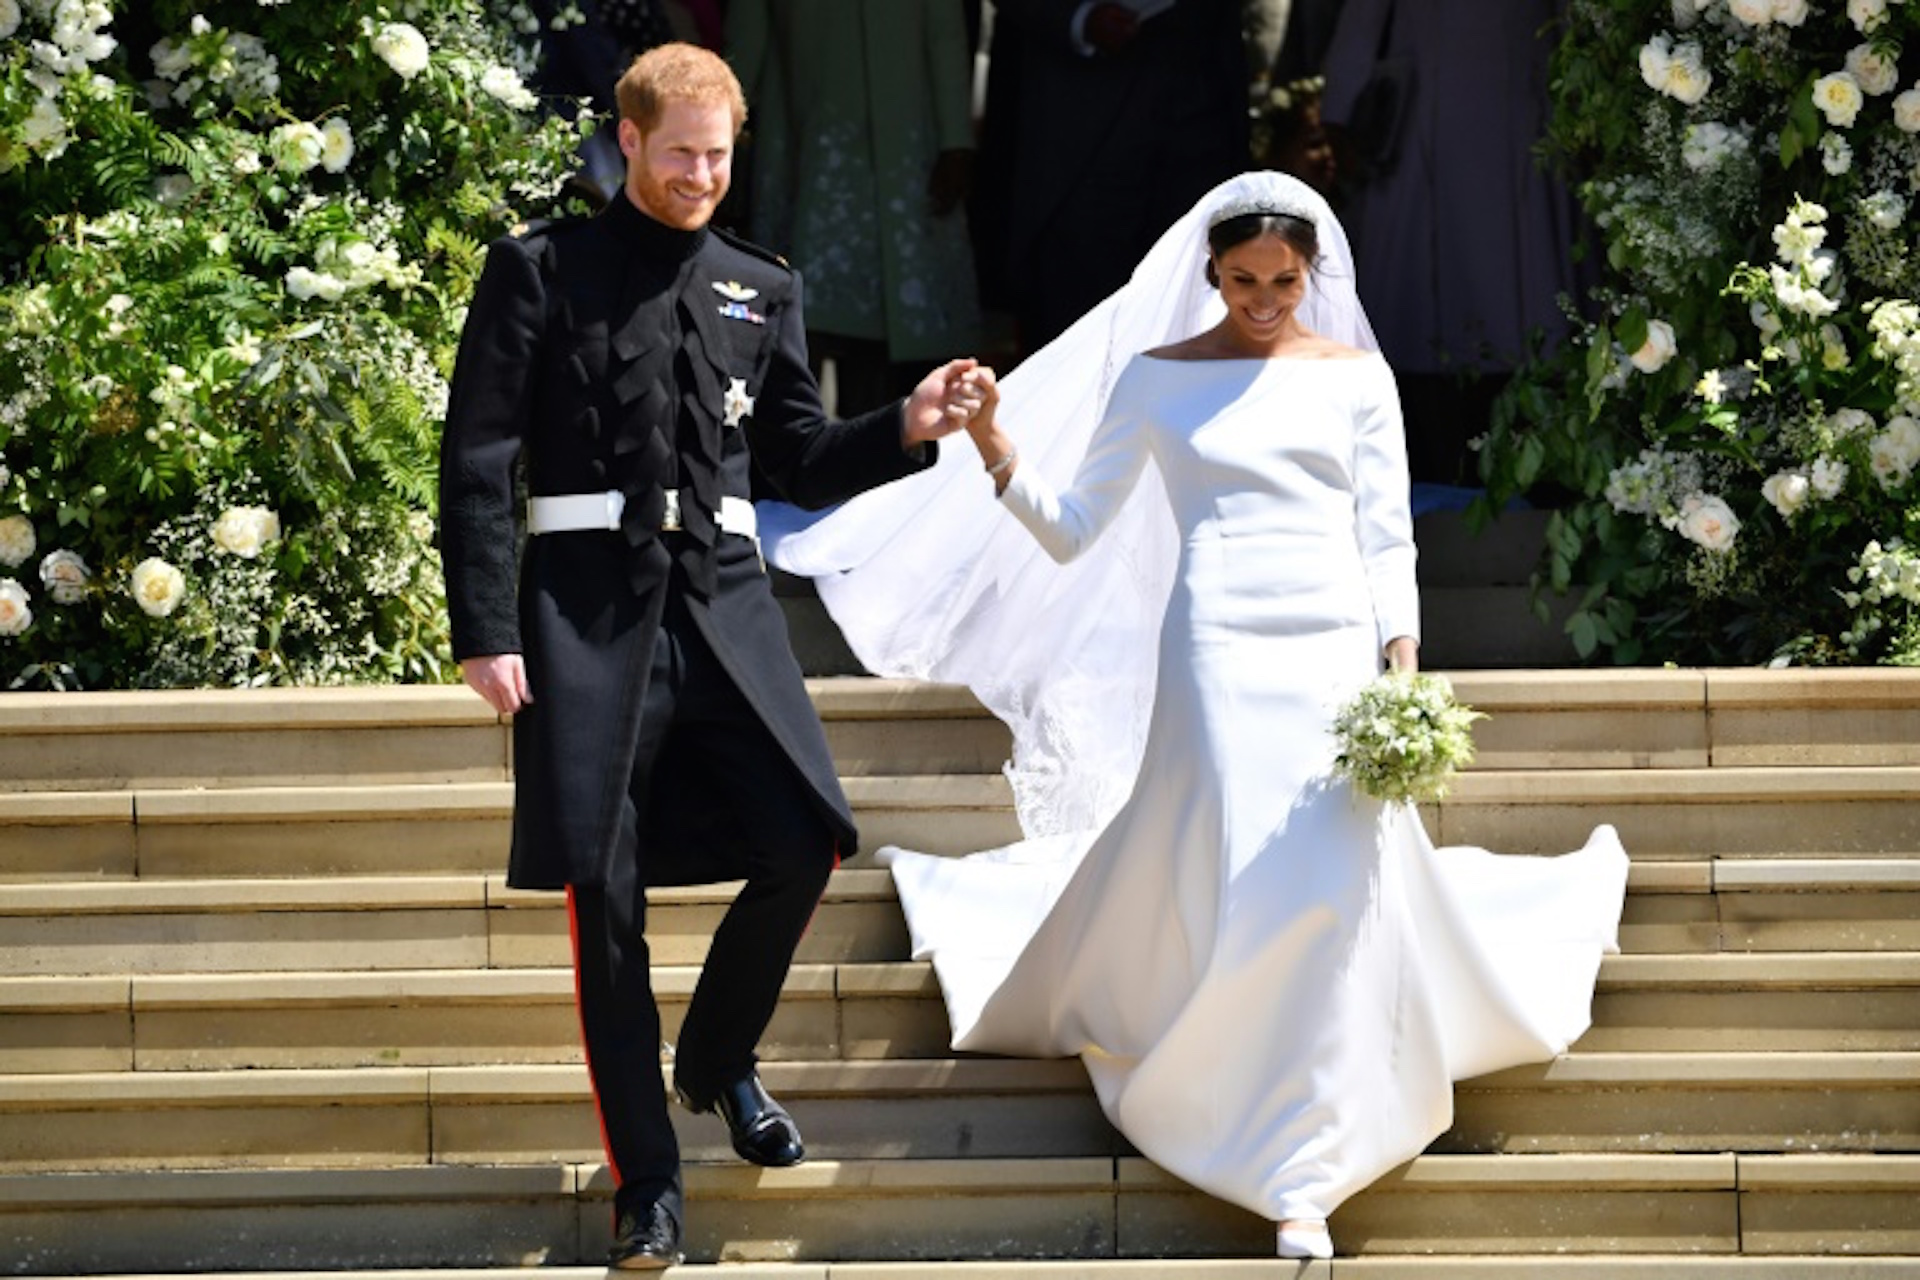 https://s3.amazonaws.com/arc-wordpress-client-uploads/infobae-wp/wp-content/uploads/2018/05/19162303/GENTE-bpda-real-principe-harry-meghan-markle-AFP.jpg